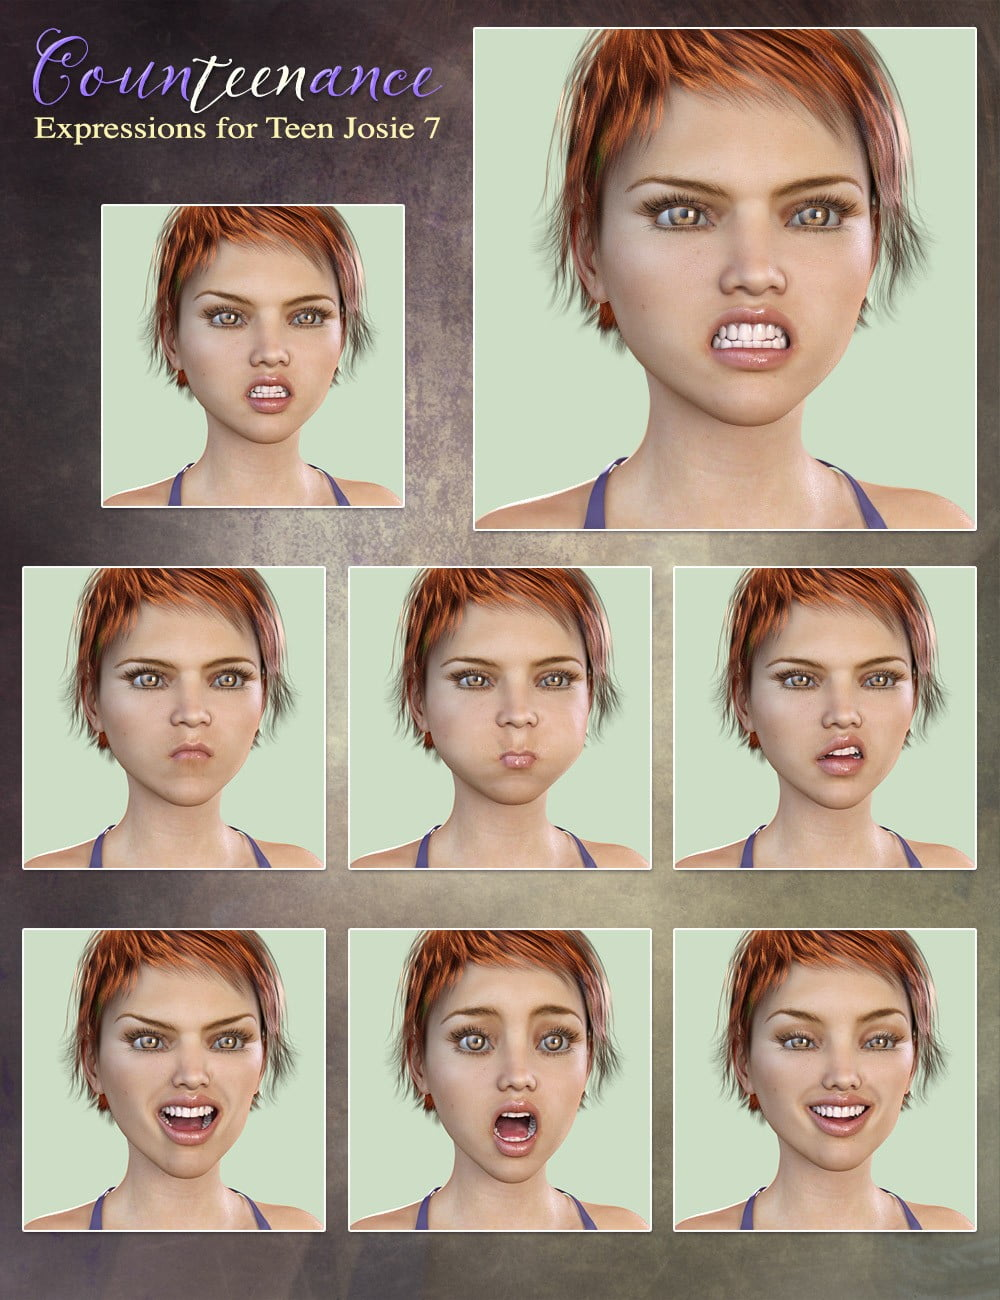 01-counteenance-expressions-for-teen-josie-7-and-genesis-3-females-daz3d